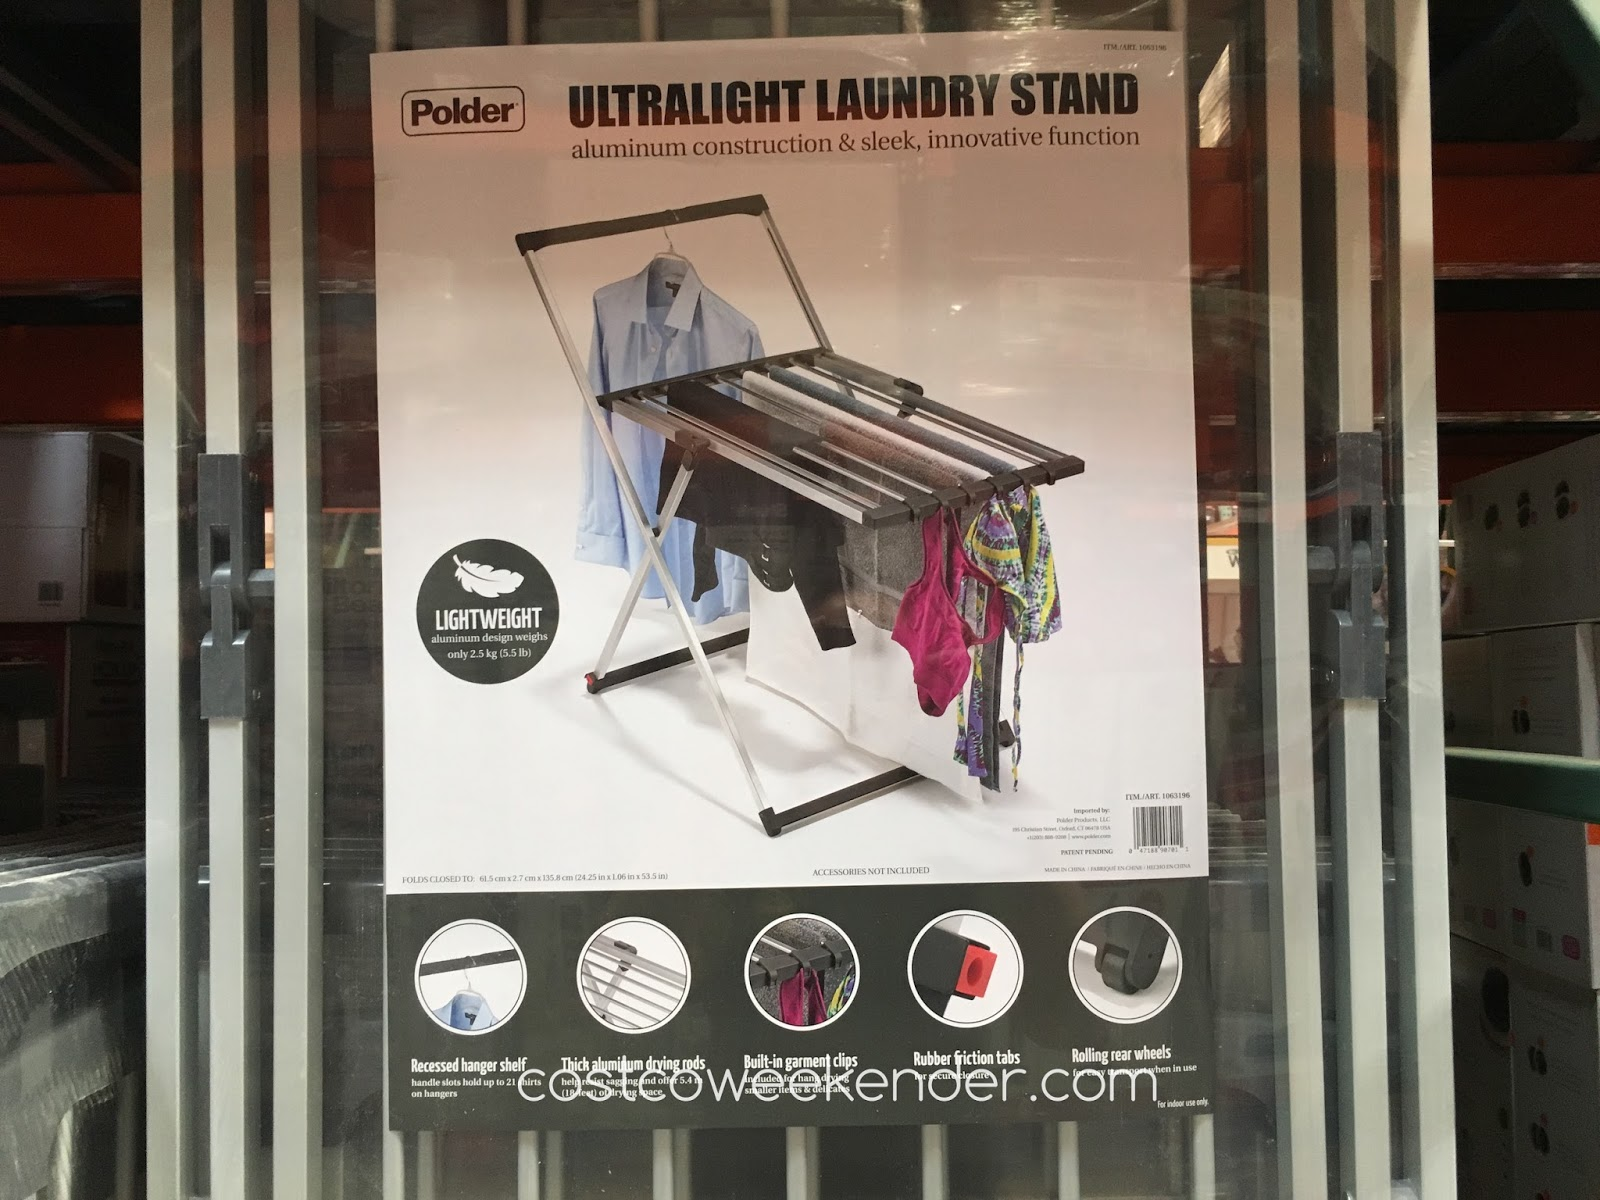 Don't ruin delicate clothing by drying them on the Polder Ultralight Laundry Stand